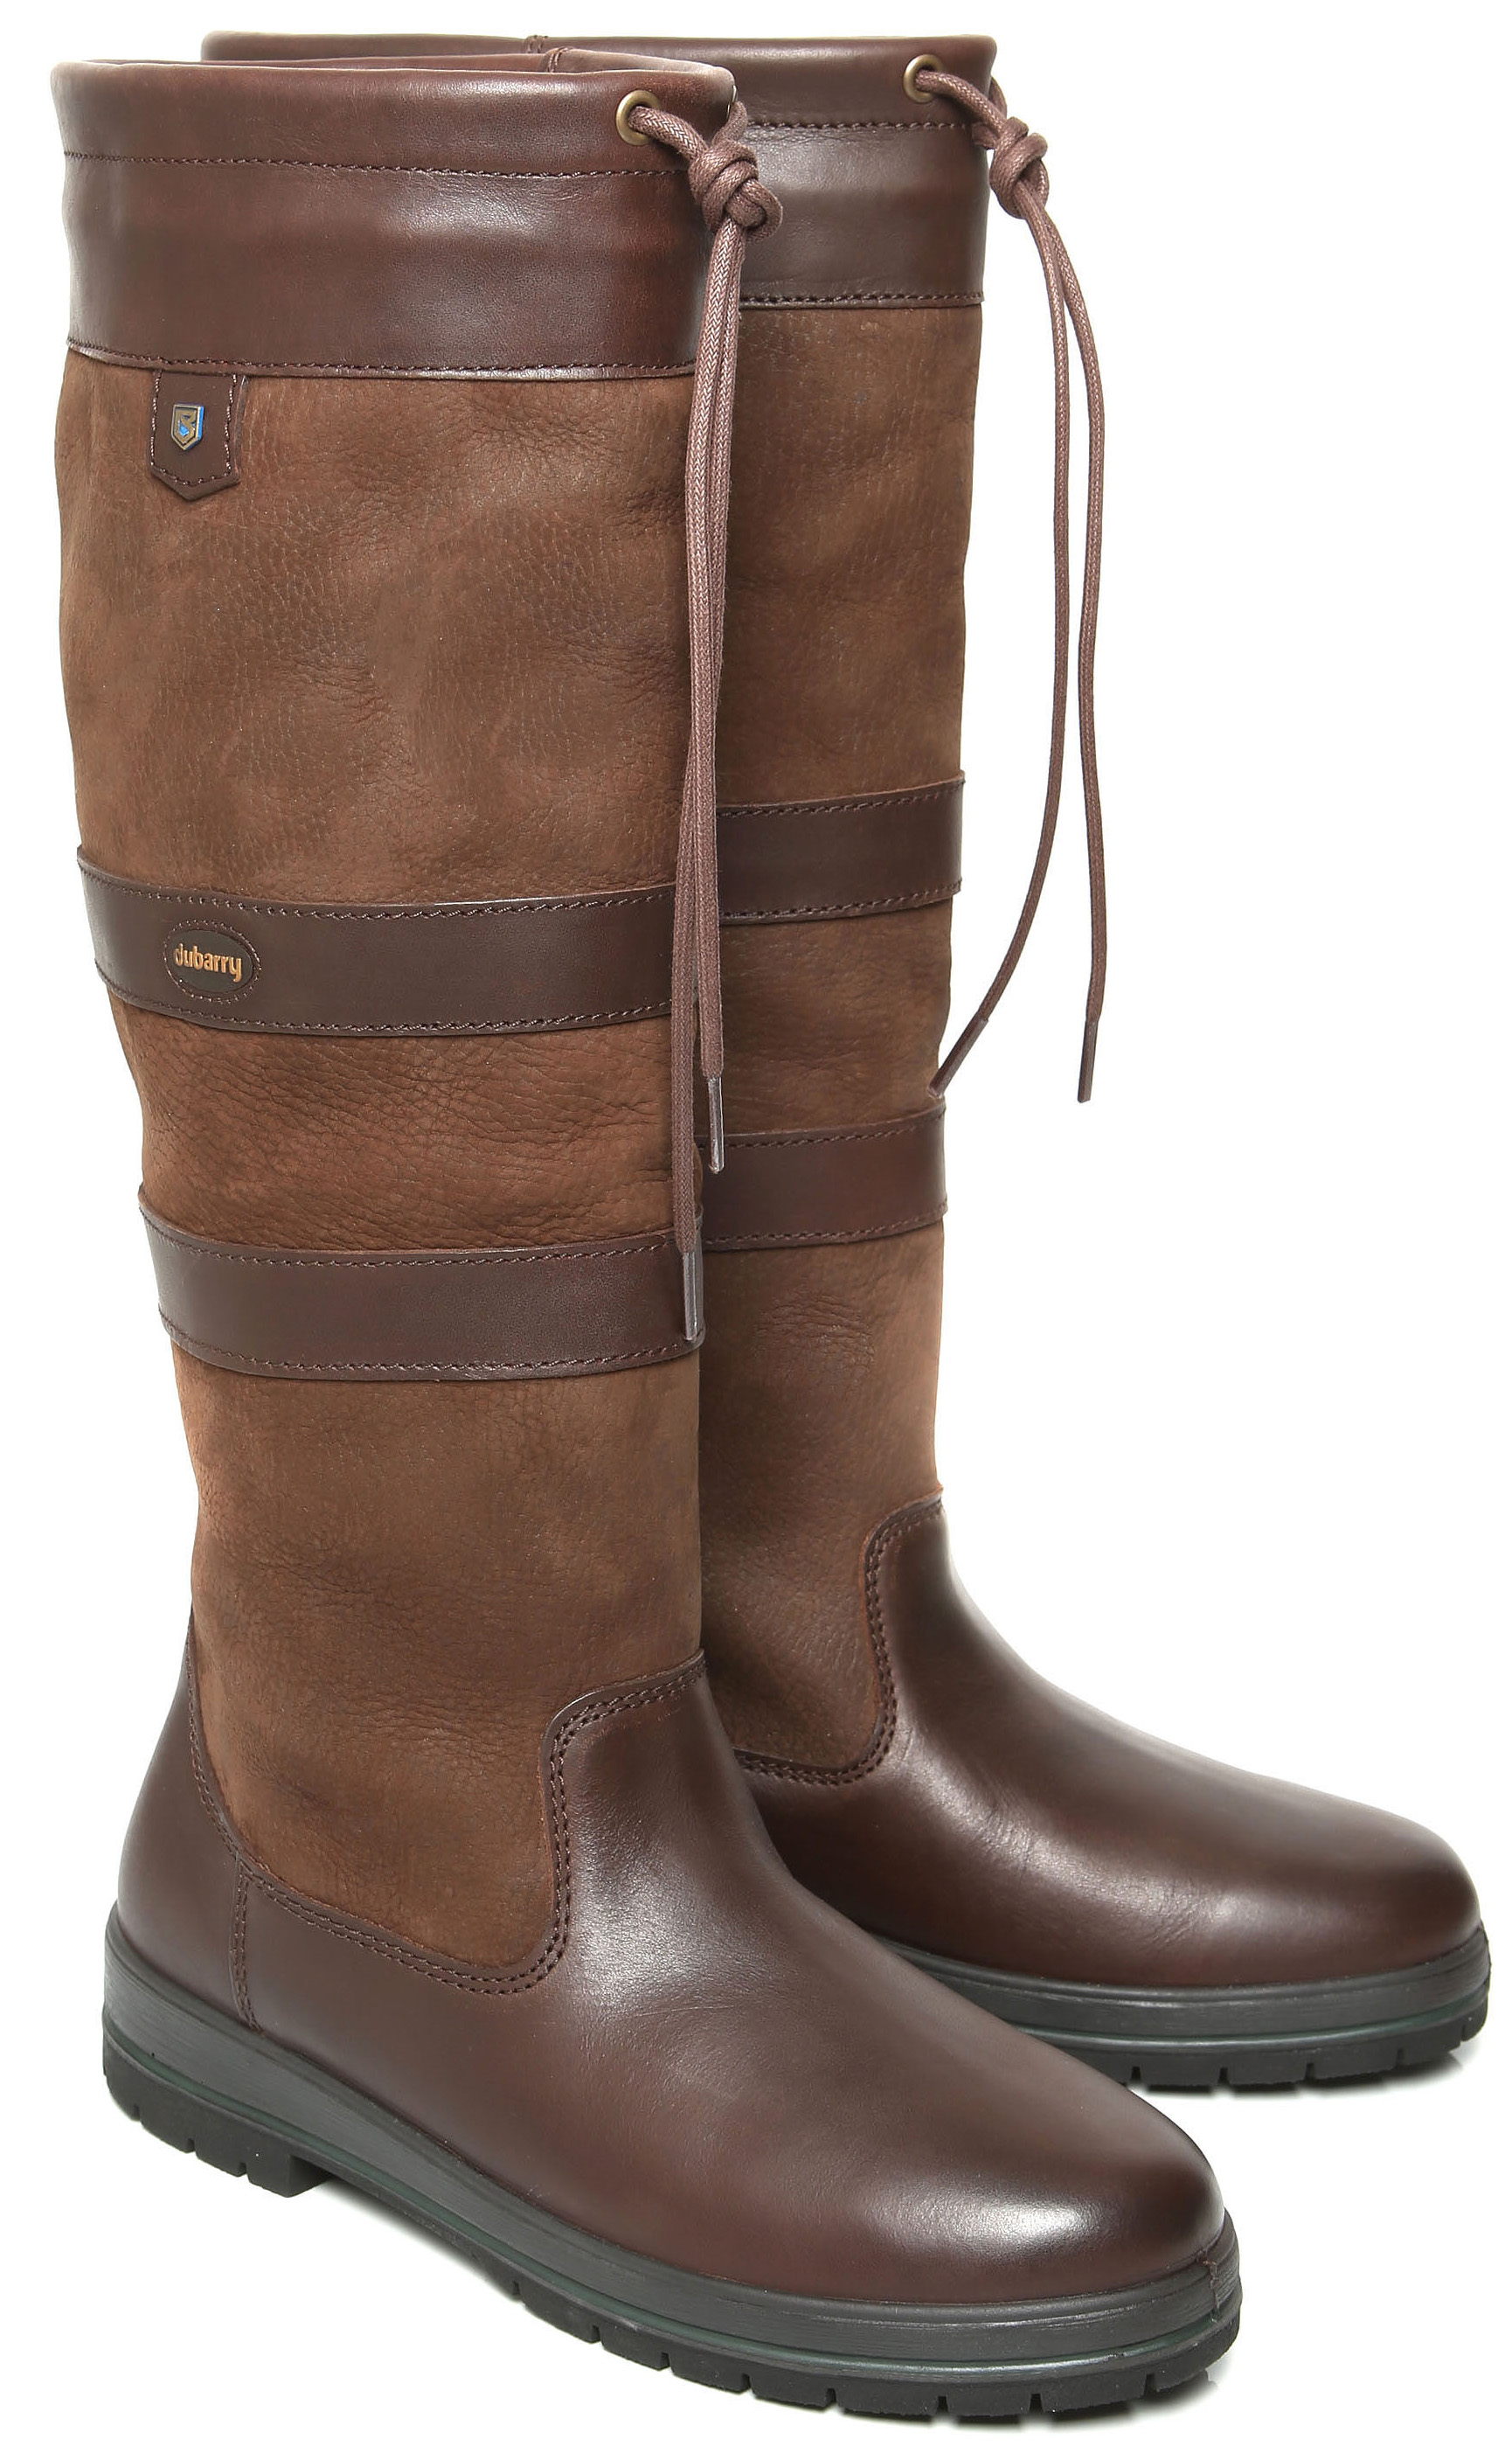 Dubarry Boots for Winter Walks at Philip Morris and Son